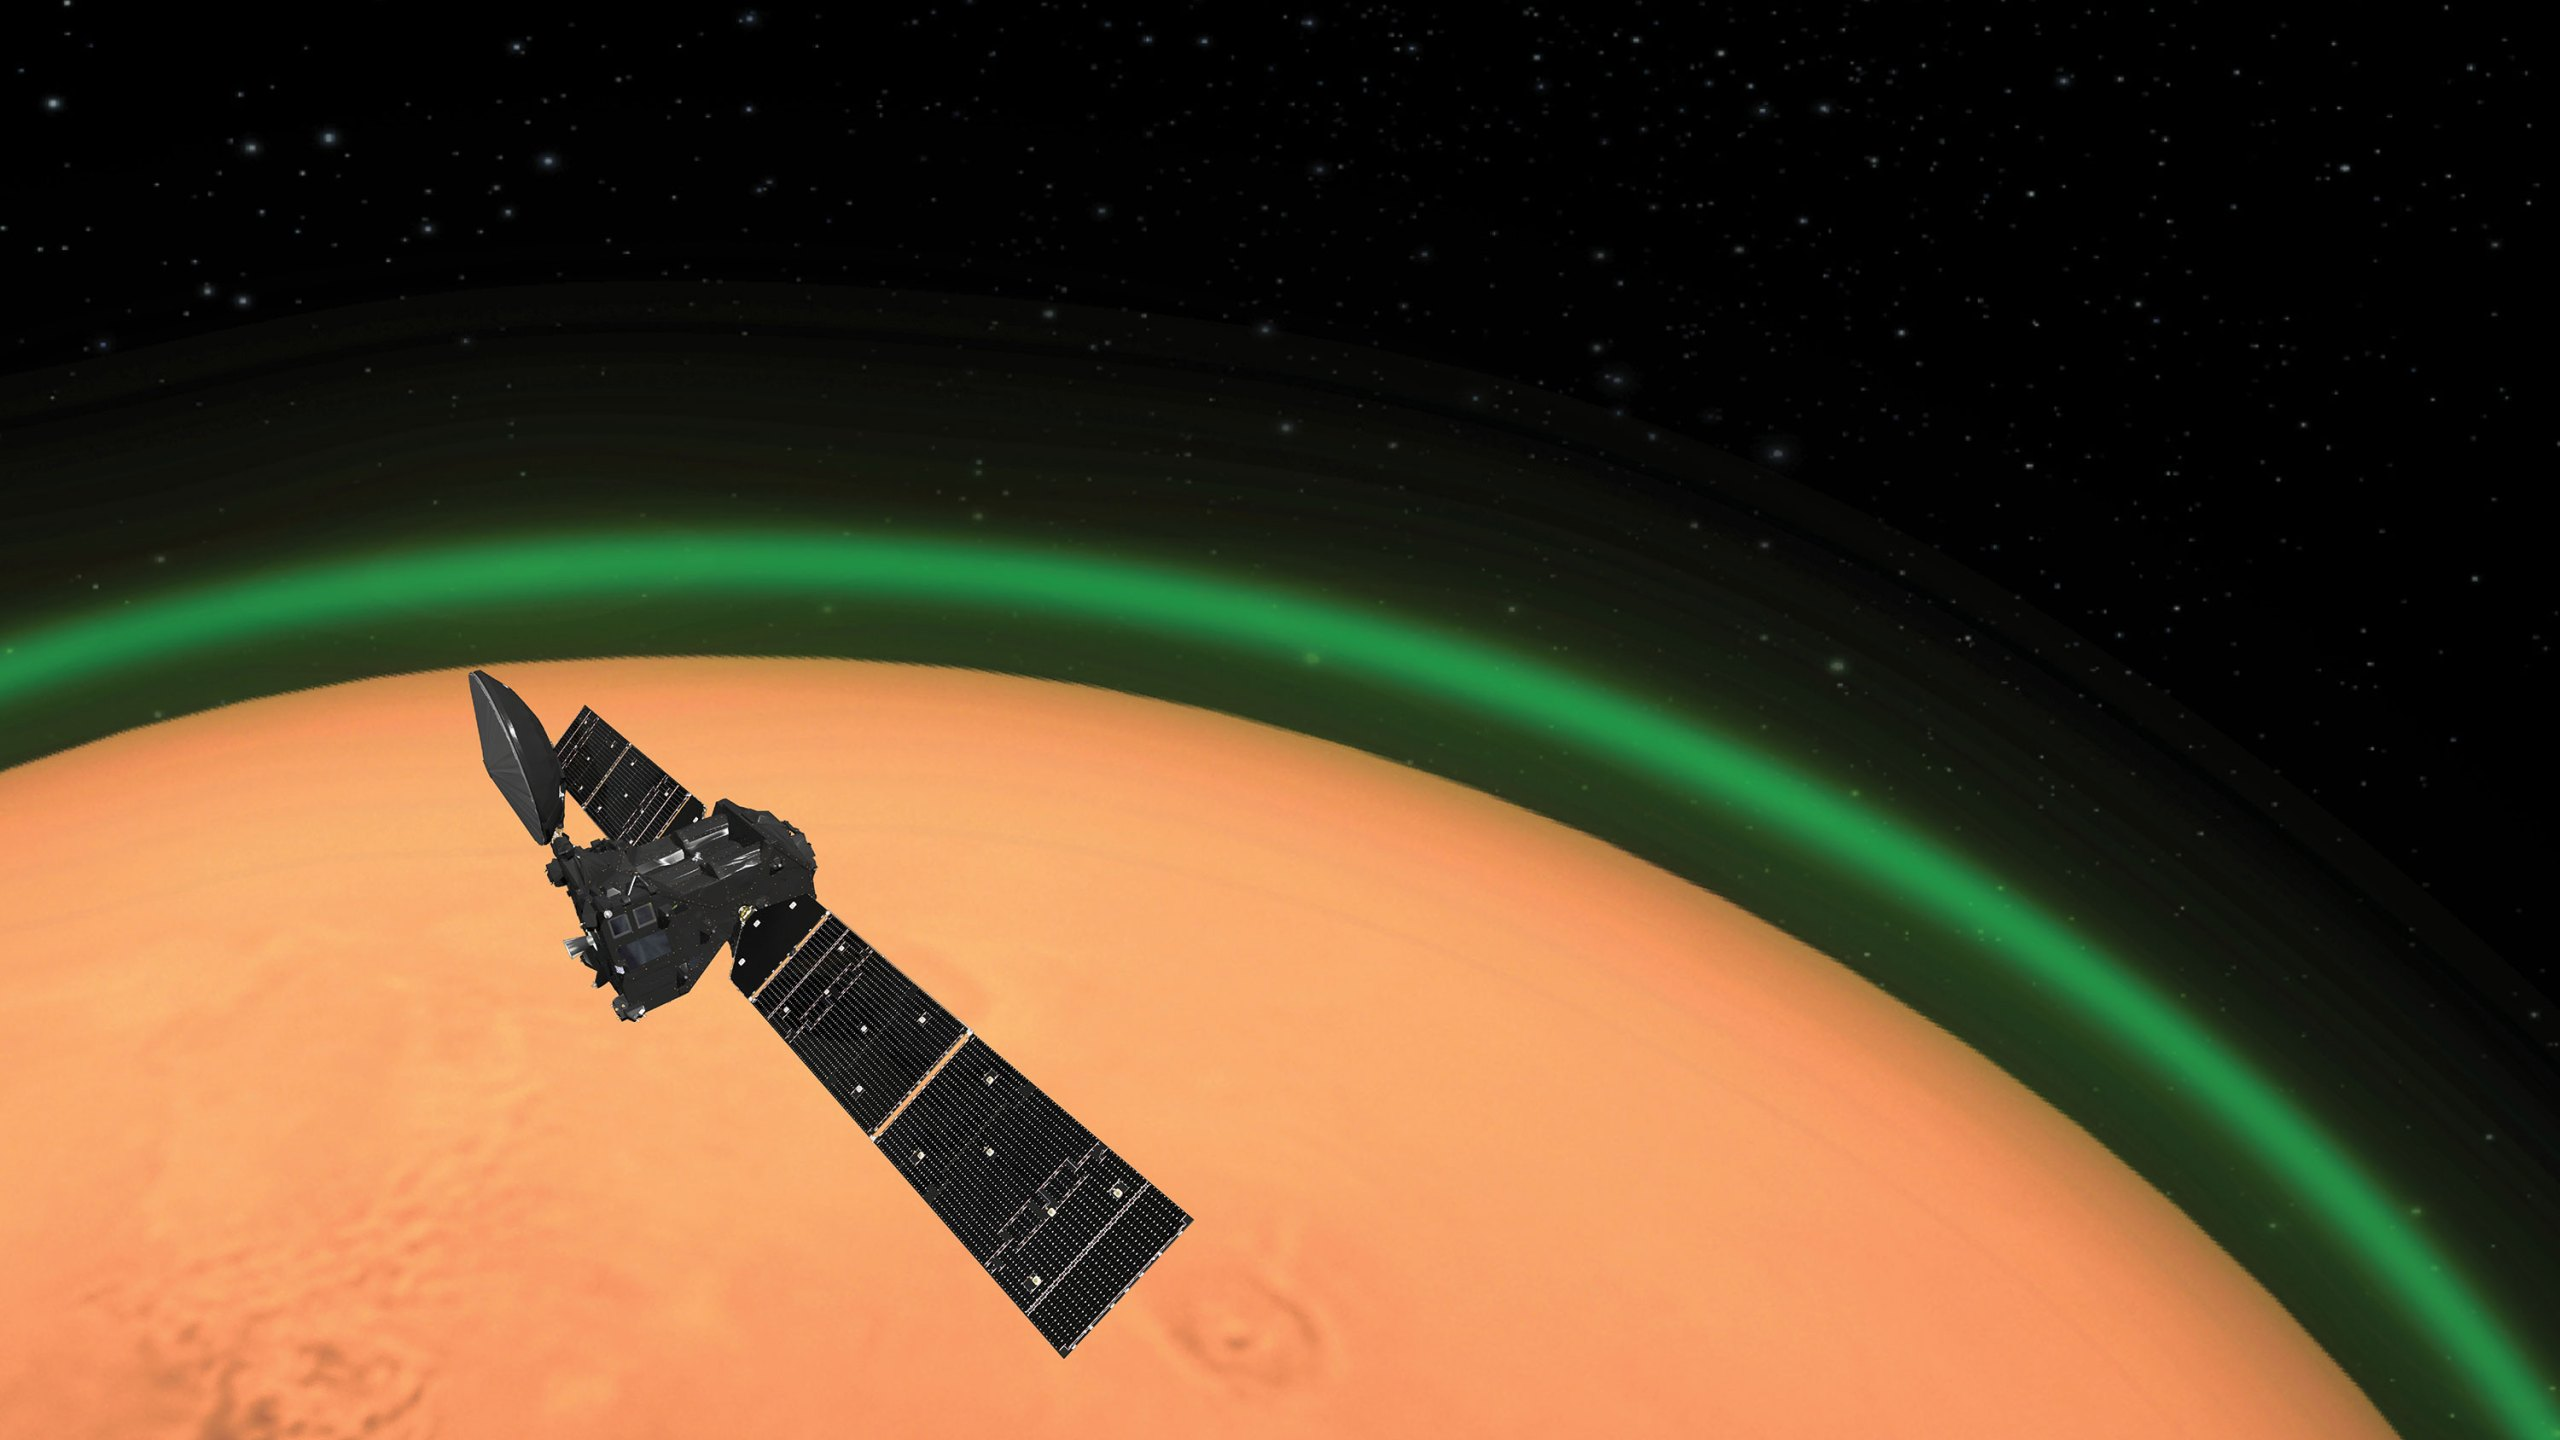 ExoMars spots unique green glow at the Red Planet (European Space Agency)